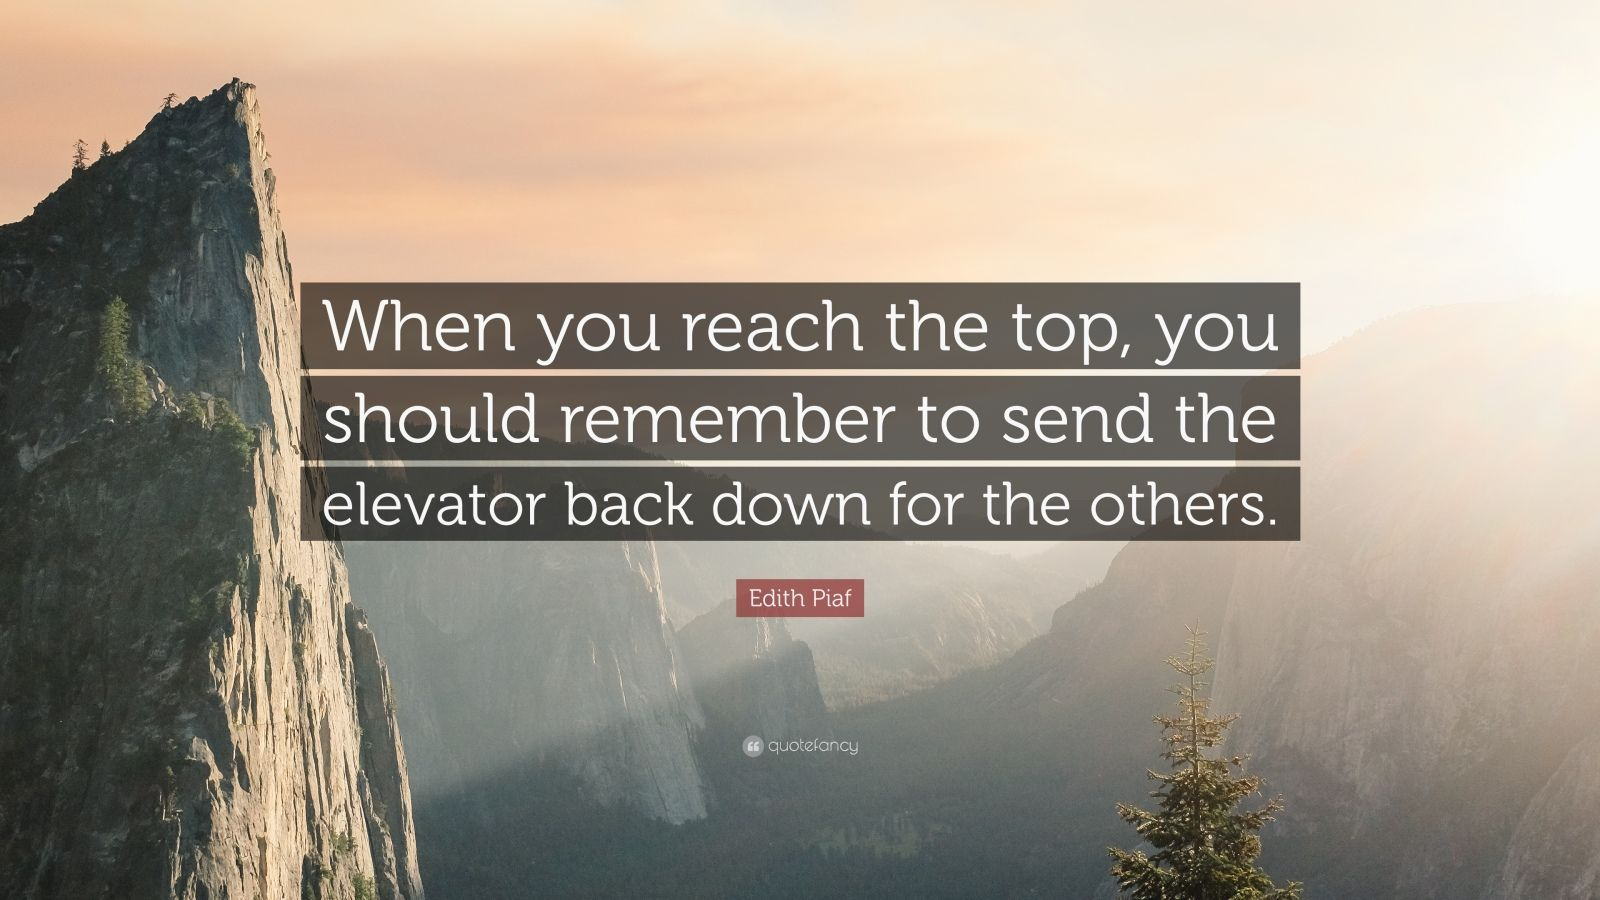 """Edith Piaf Quote: """"When you reach the top, you should remember to send the elevator back down for the others."""""""